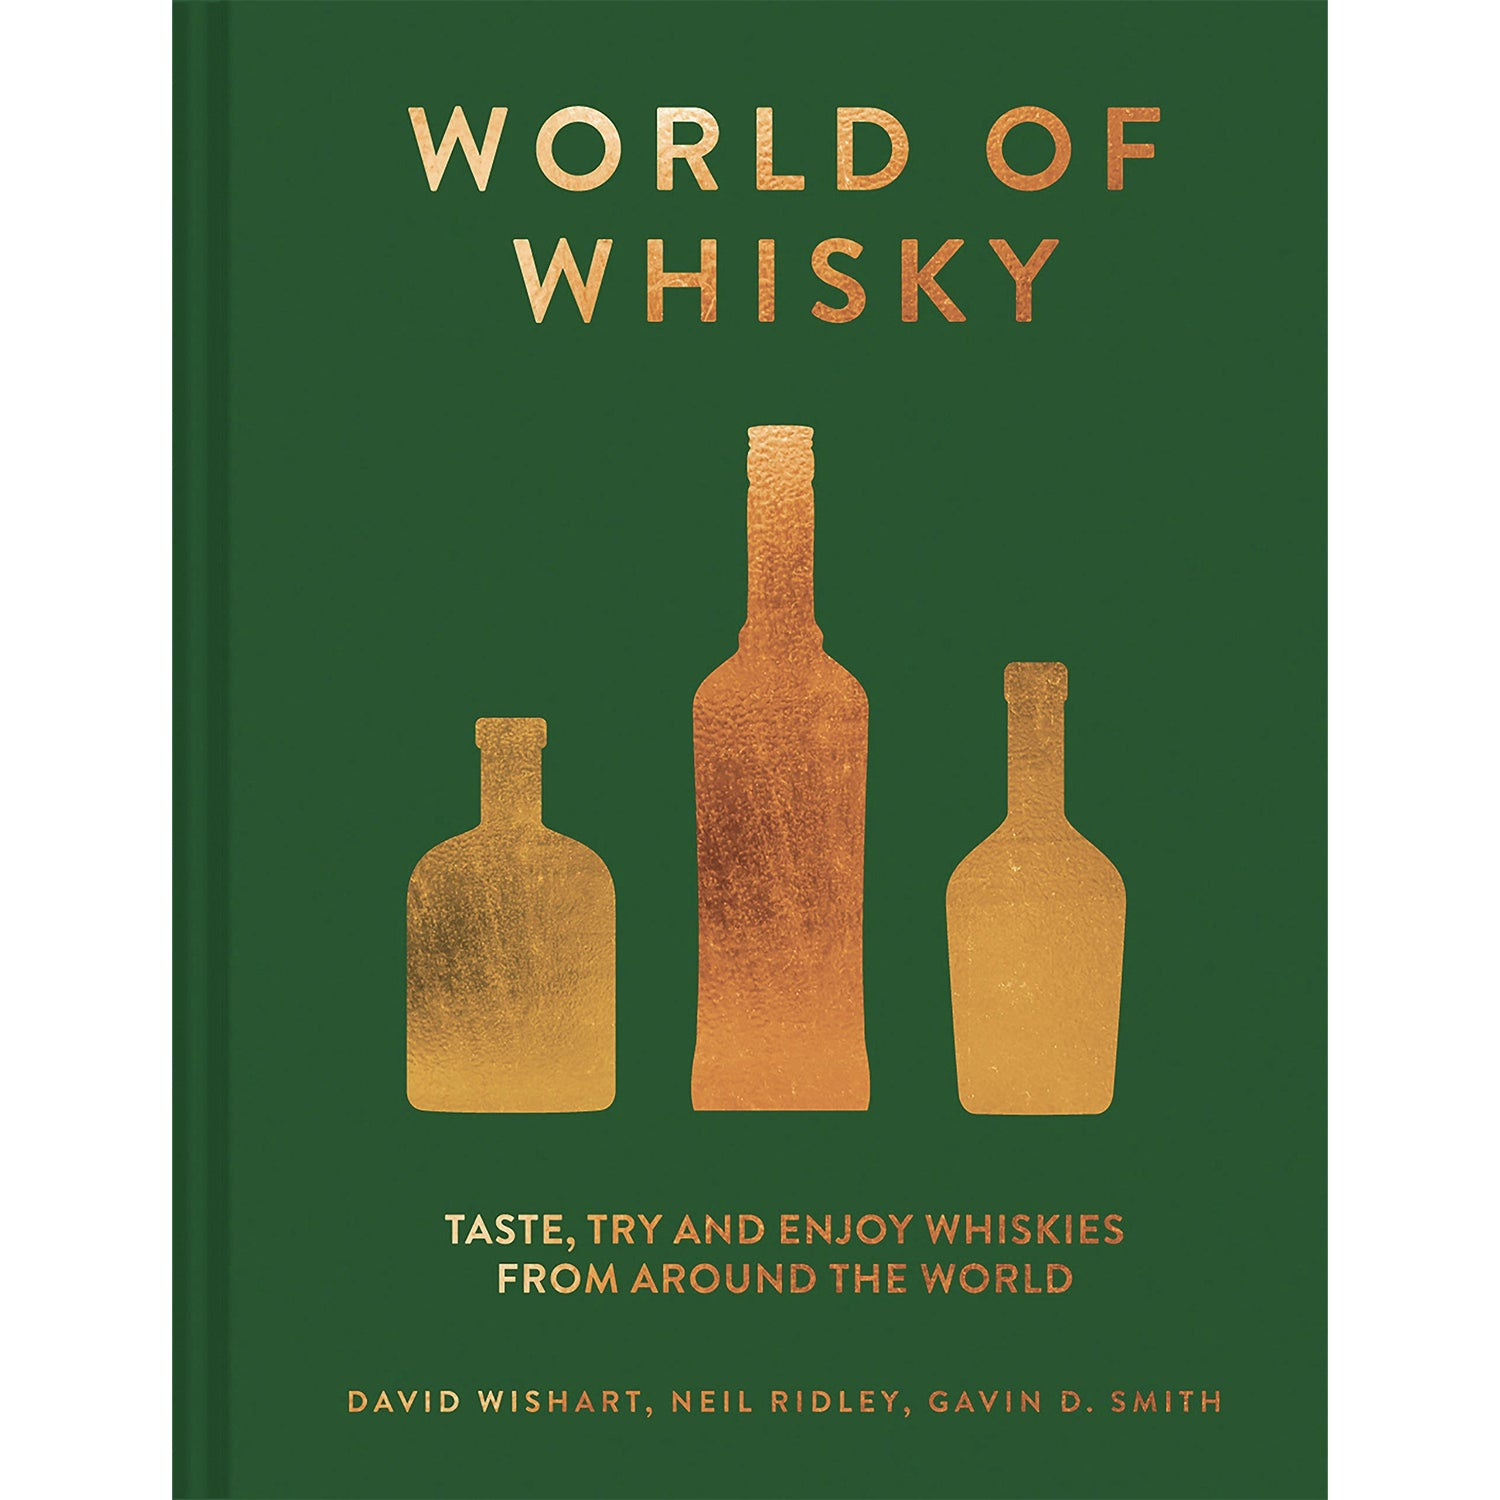 World of Whisky: Taste, Try and Enjoy Whiskies From Around the World